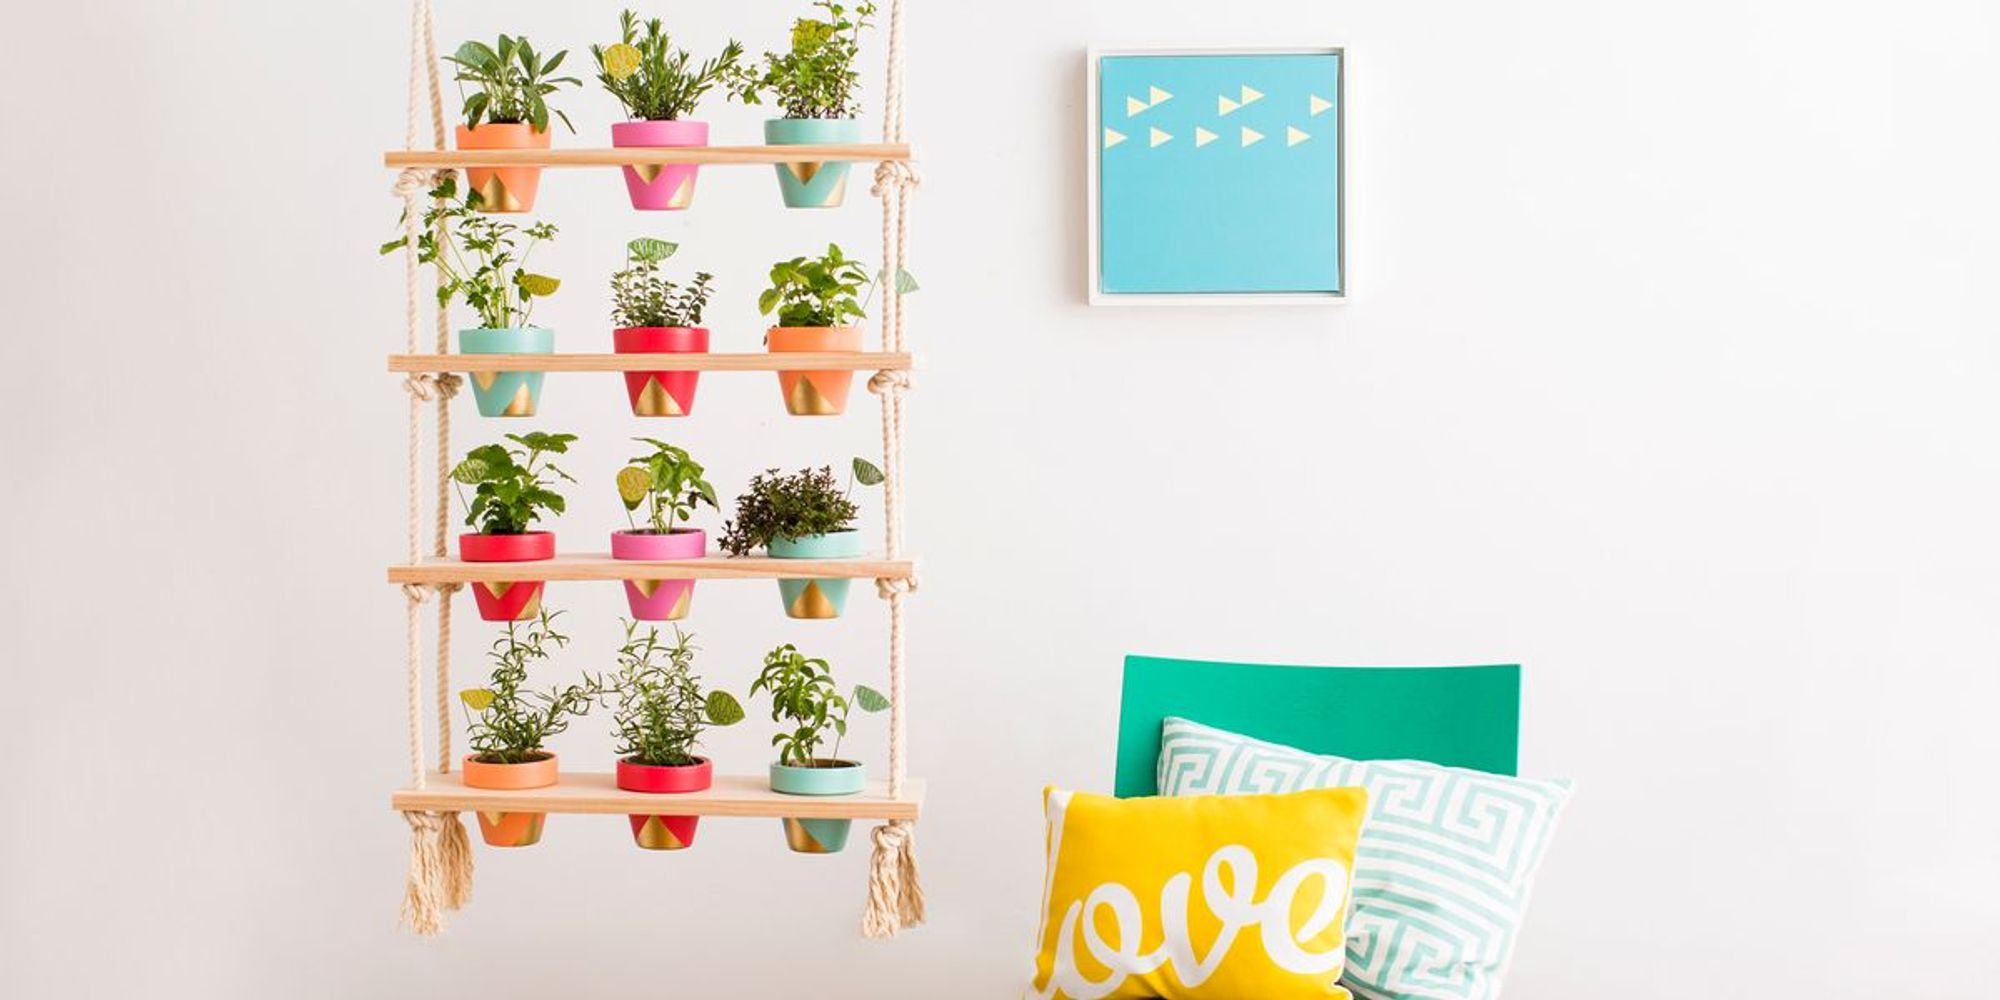 Home improvement projects that you can do in 5 days or less